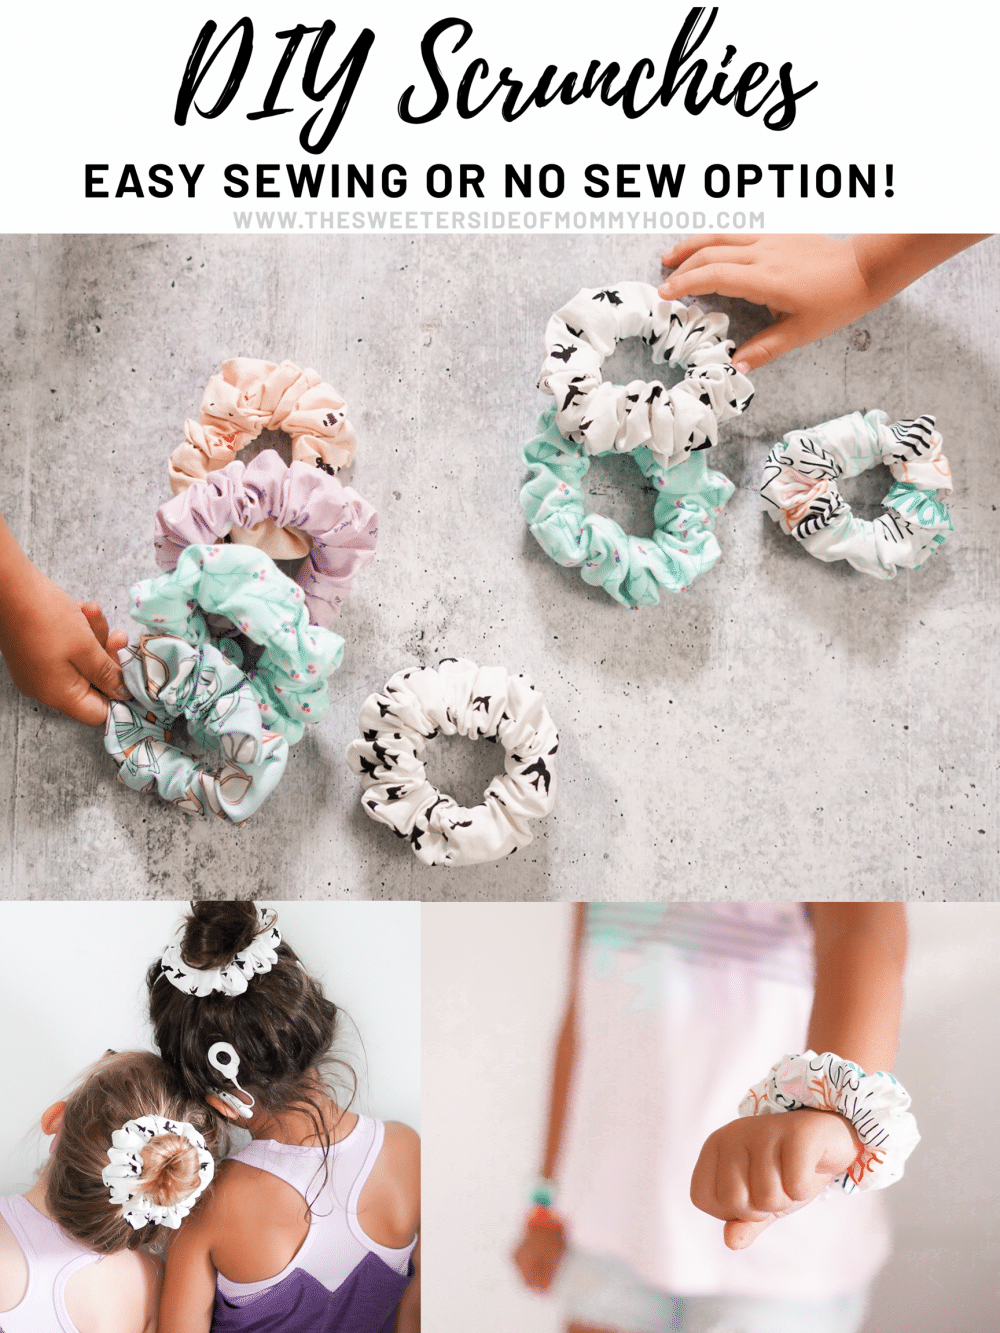 DIY Scrunchies And a No-Sew Option! - The Sweeter Side of Mommyhood #scrunchiesdiy